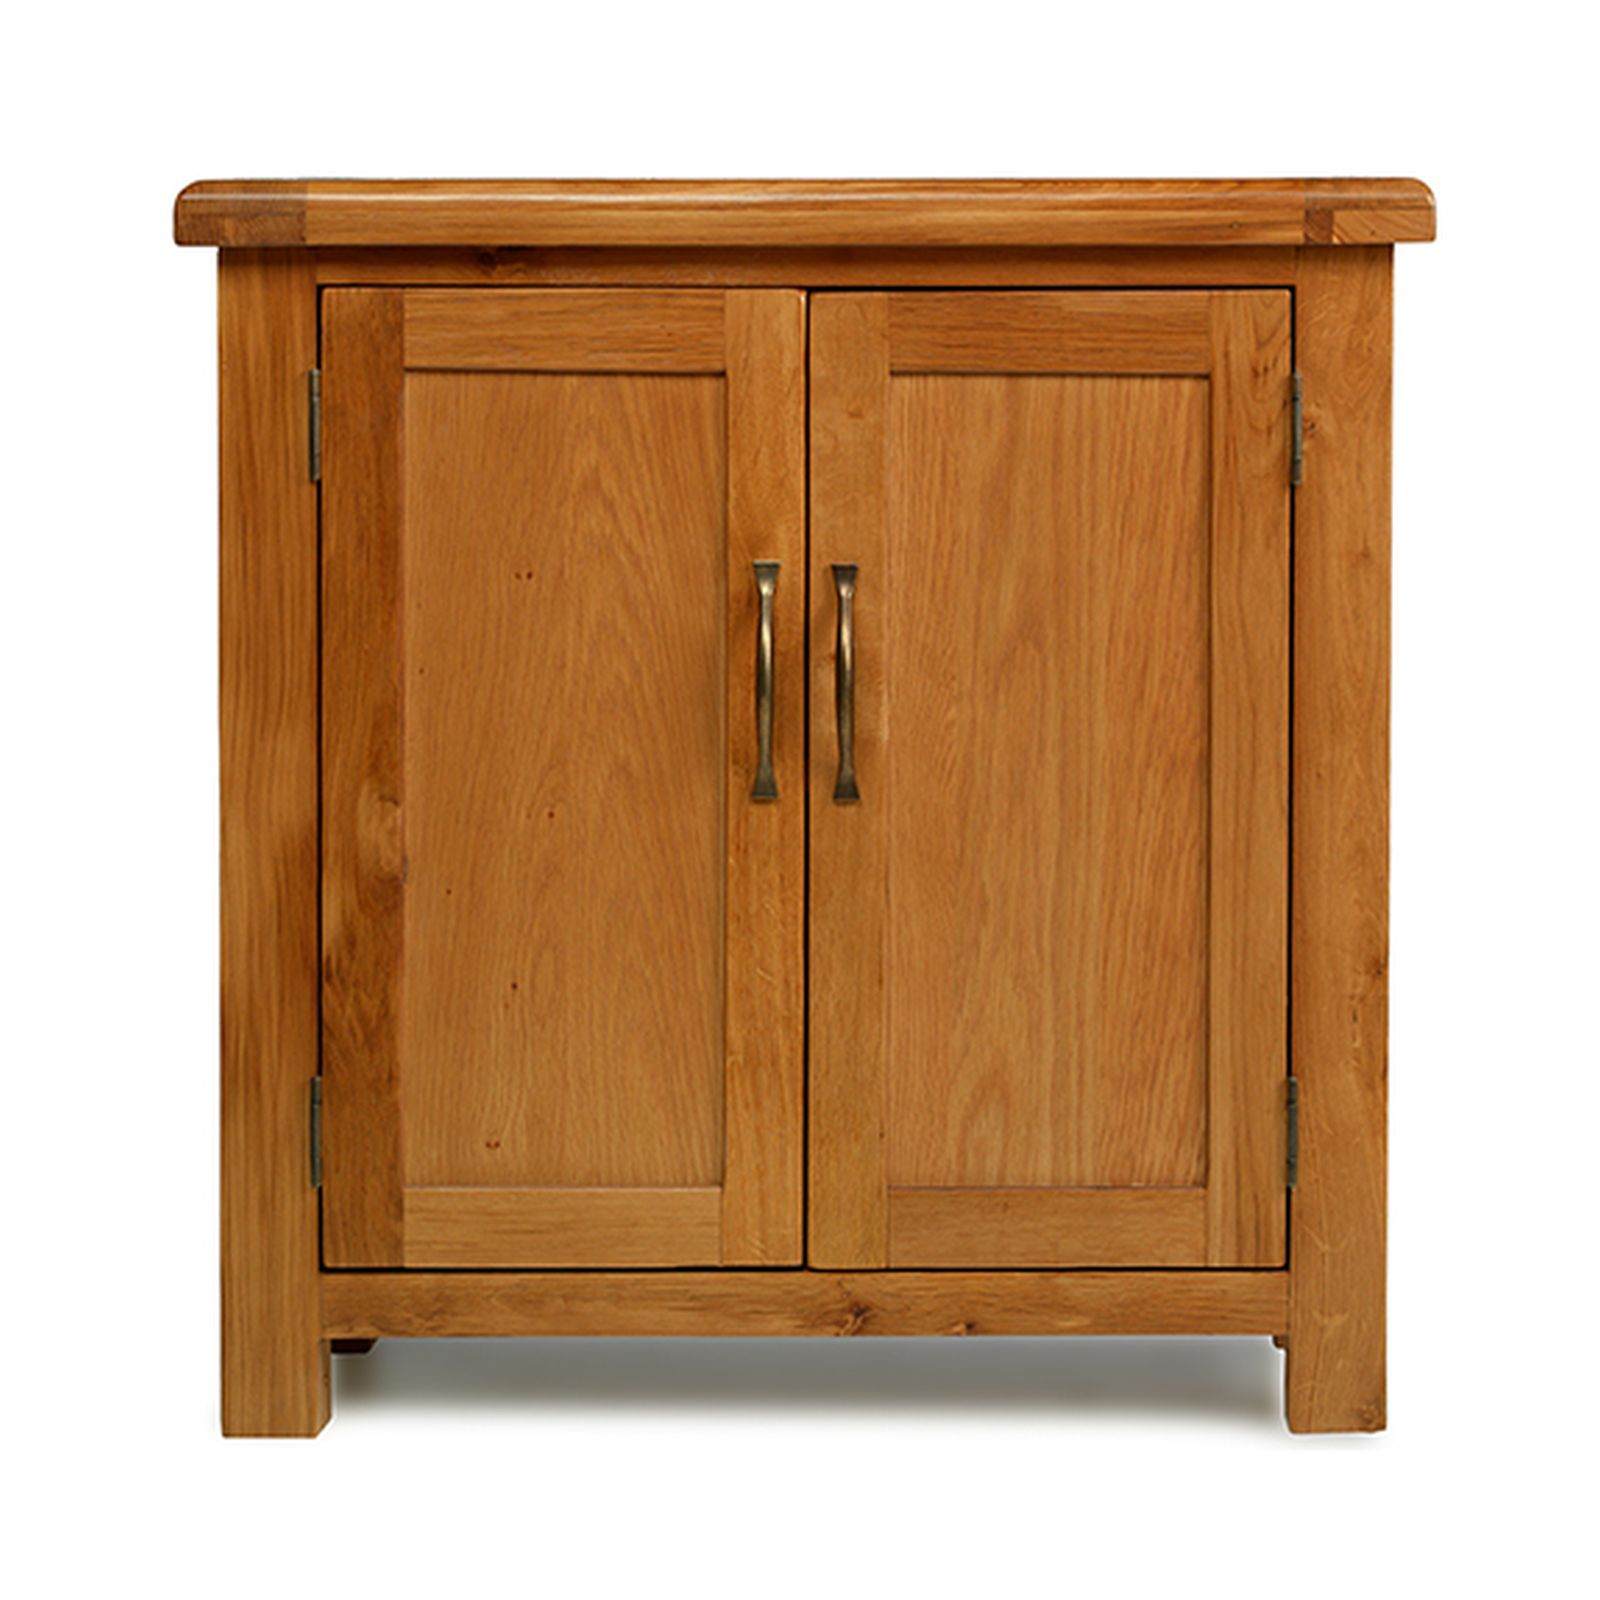 Rushden solid oak furniture small petite cabinet storage for Storage in cupboards